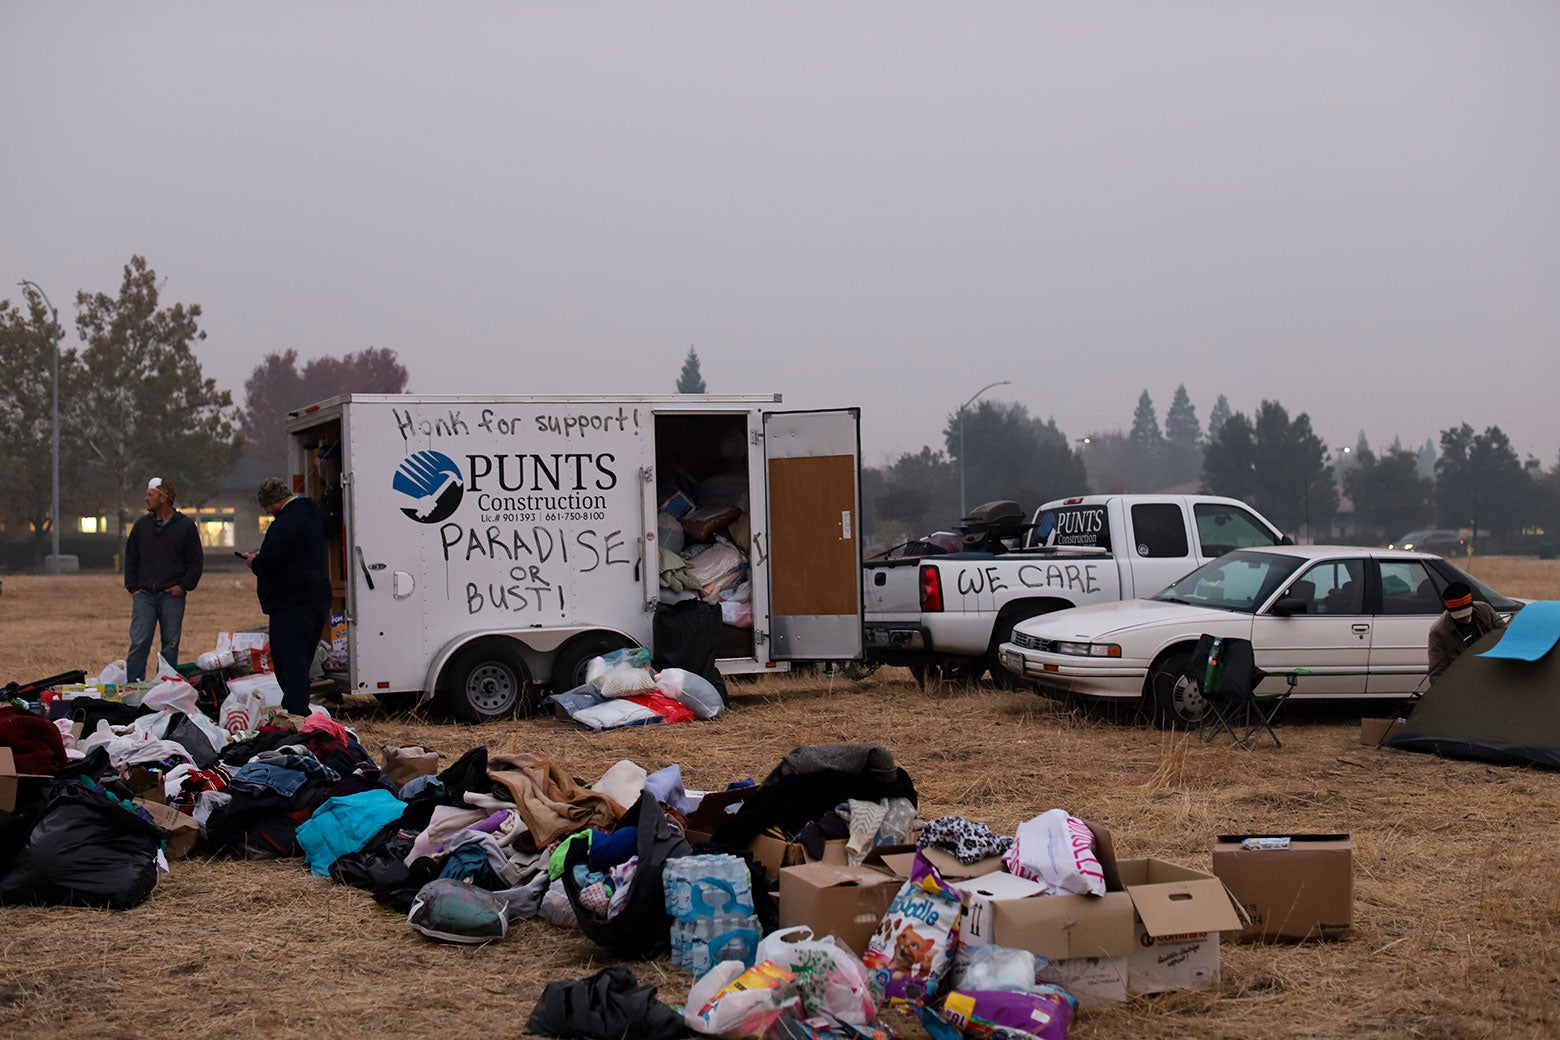 So many donations have been brought to the Walmart tent camp in Chico, California, that some go unclaimed.